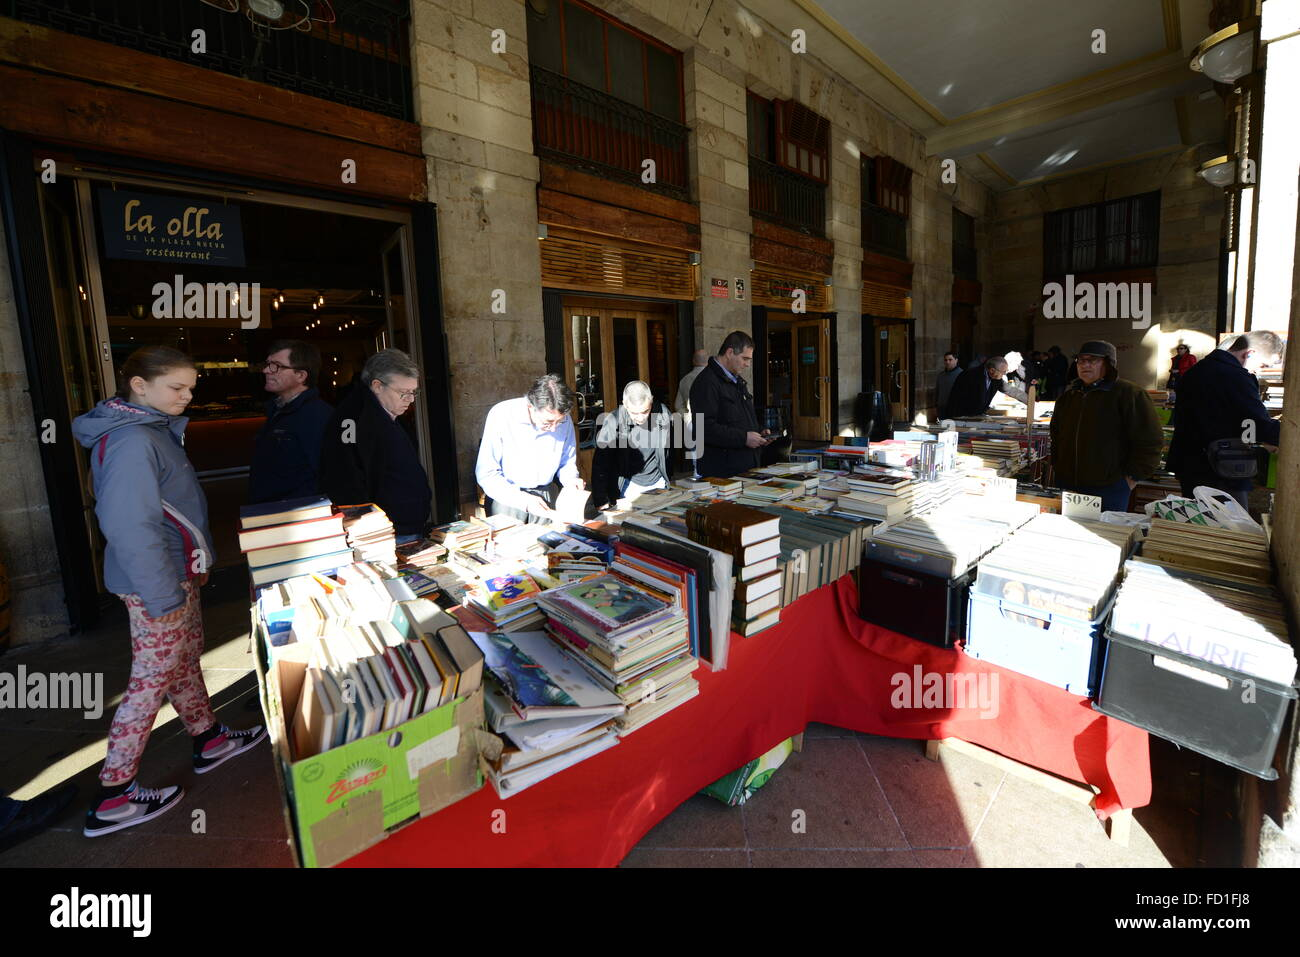 2nd hand books, records and antiques sold on Sunday's in Bilbao's Plaza Nueva. - Stock Image